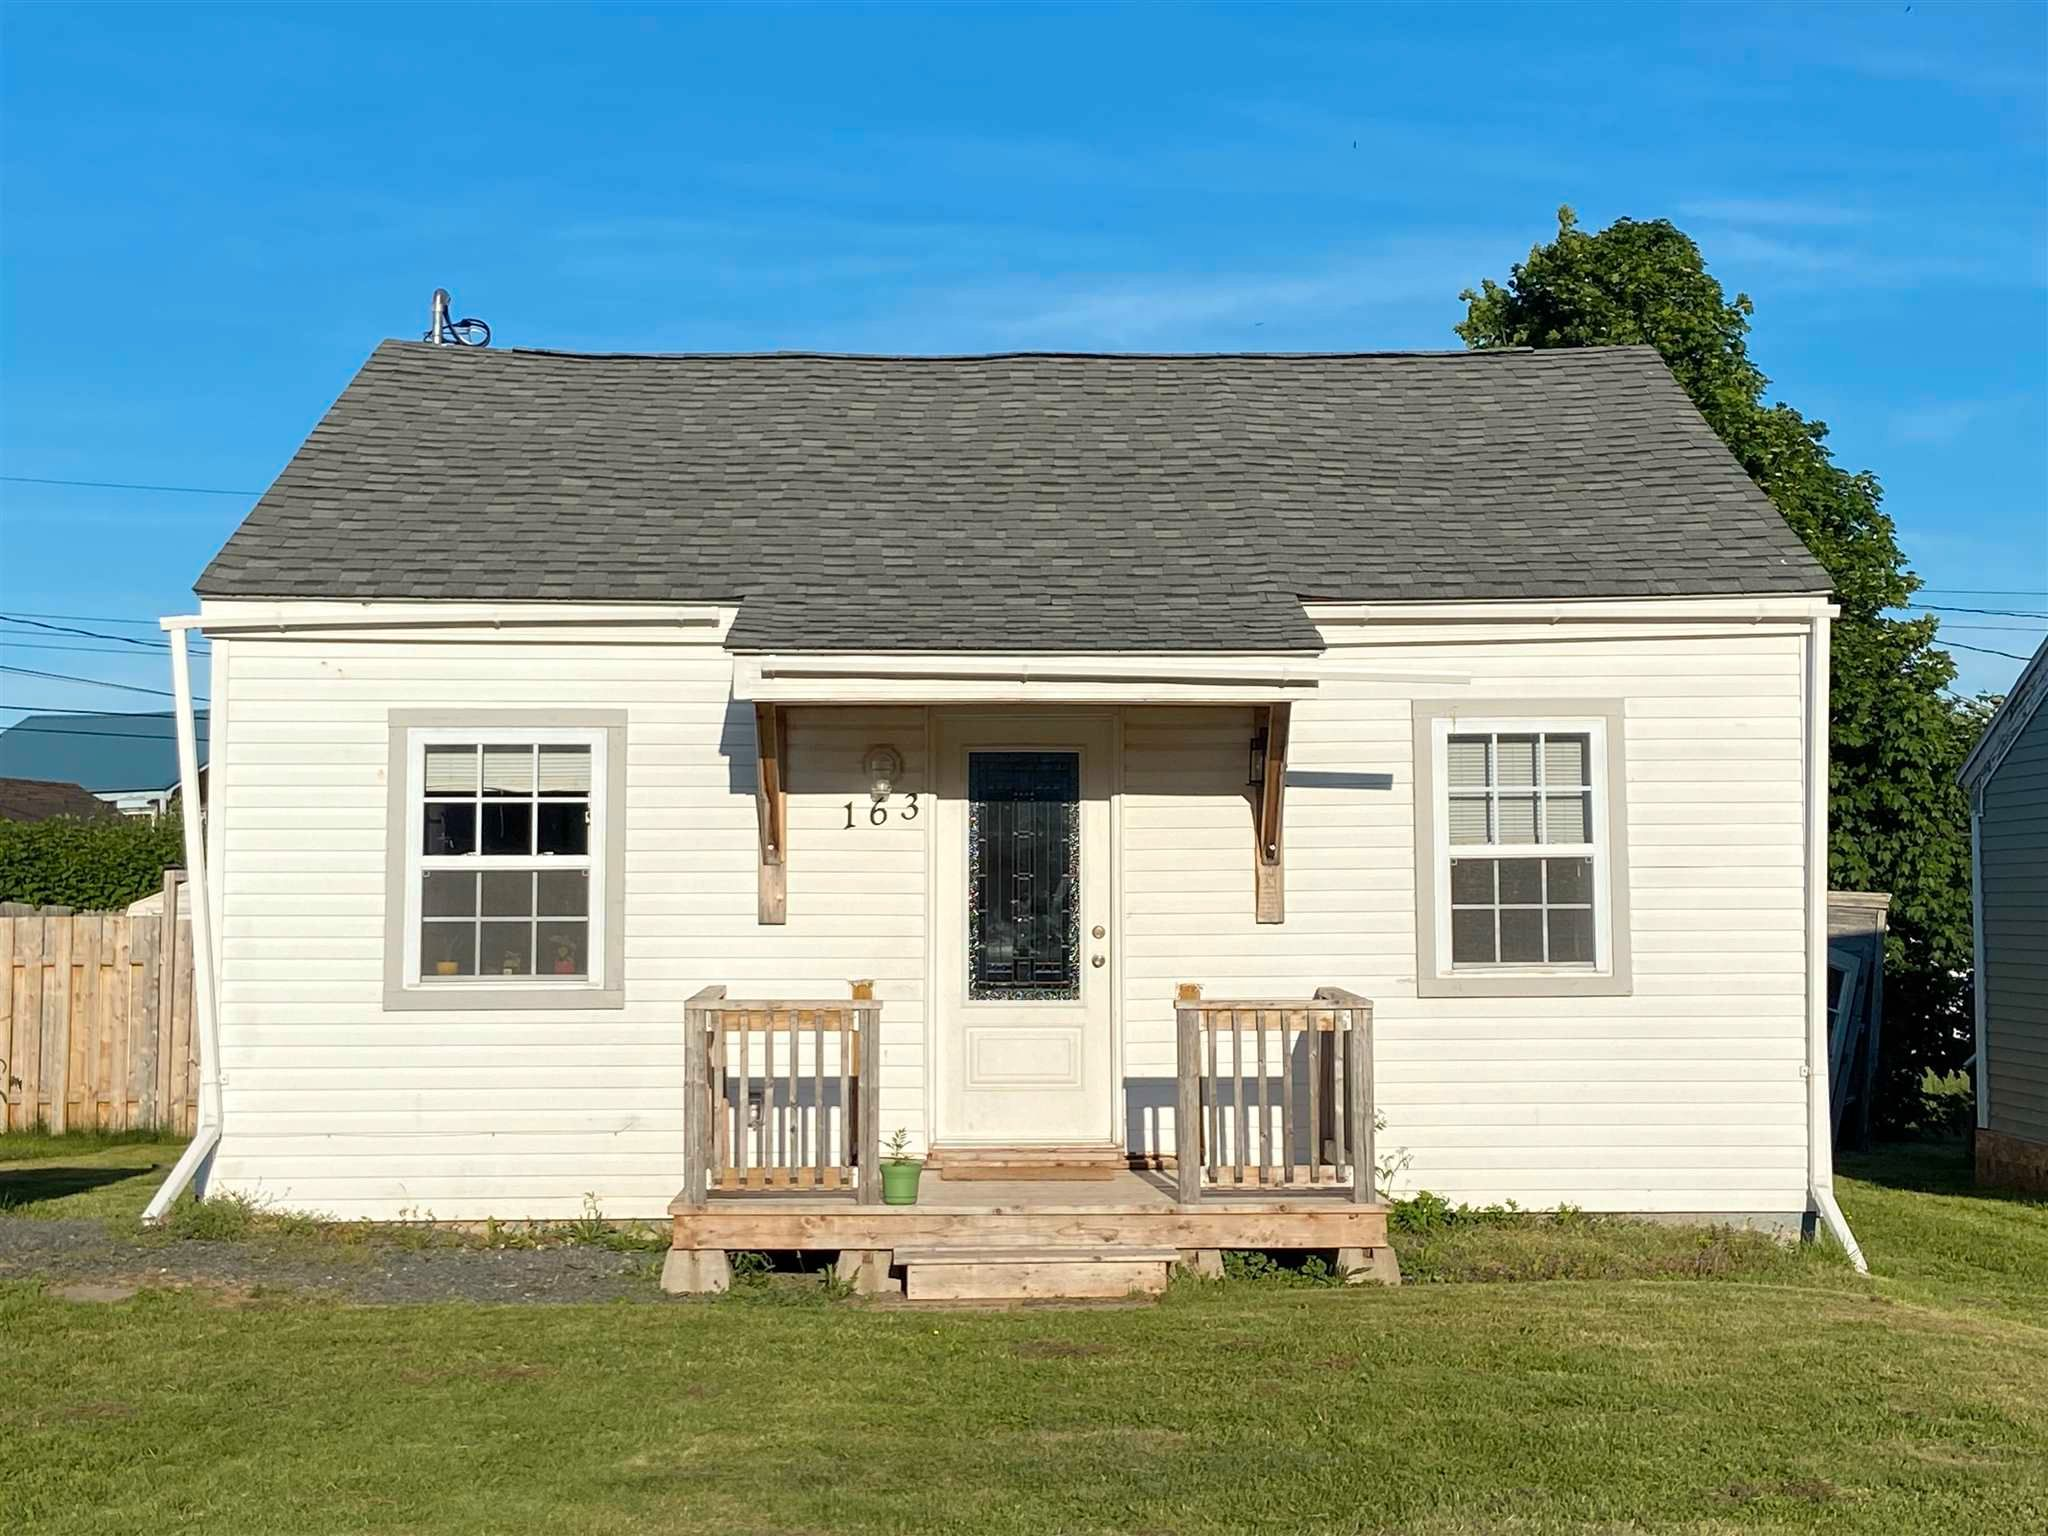 Main Photo: 163 Elm Street in Pictou: 107-Trenton,Westville,Pictou Residential for sale (Northern Region)  : MLS®# 202114974